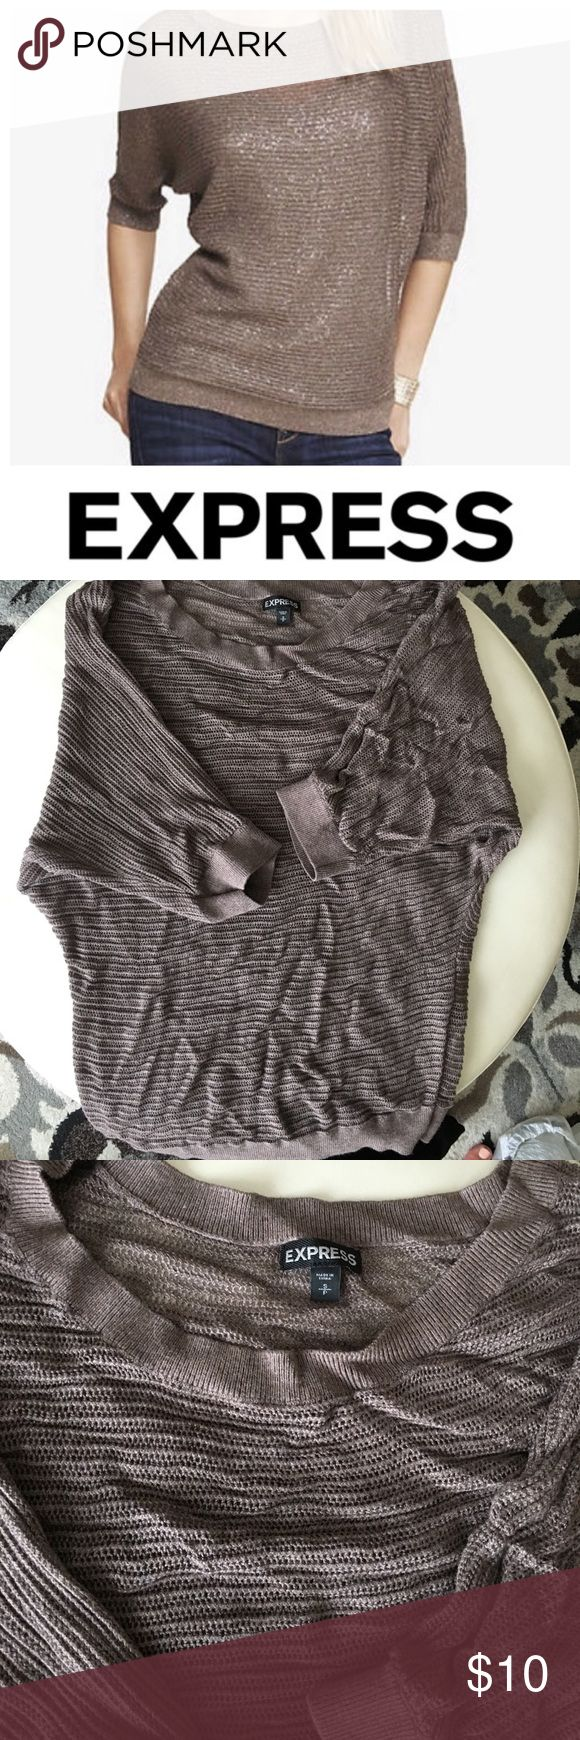 🎈Clearance🎈 Express Open Knit Dolman Sweater Mushroom-colored open knit sweater (the cover photo has a metallic thread, the actual item does NOT), looks great over a sequined tank. No flaws. Pet-free, smoke-free home. Express Sweaters Crew & Scoop Necks